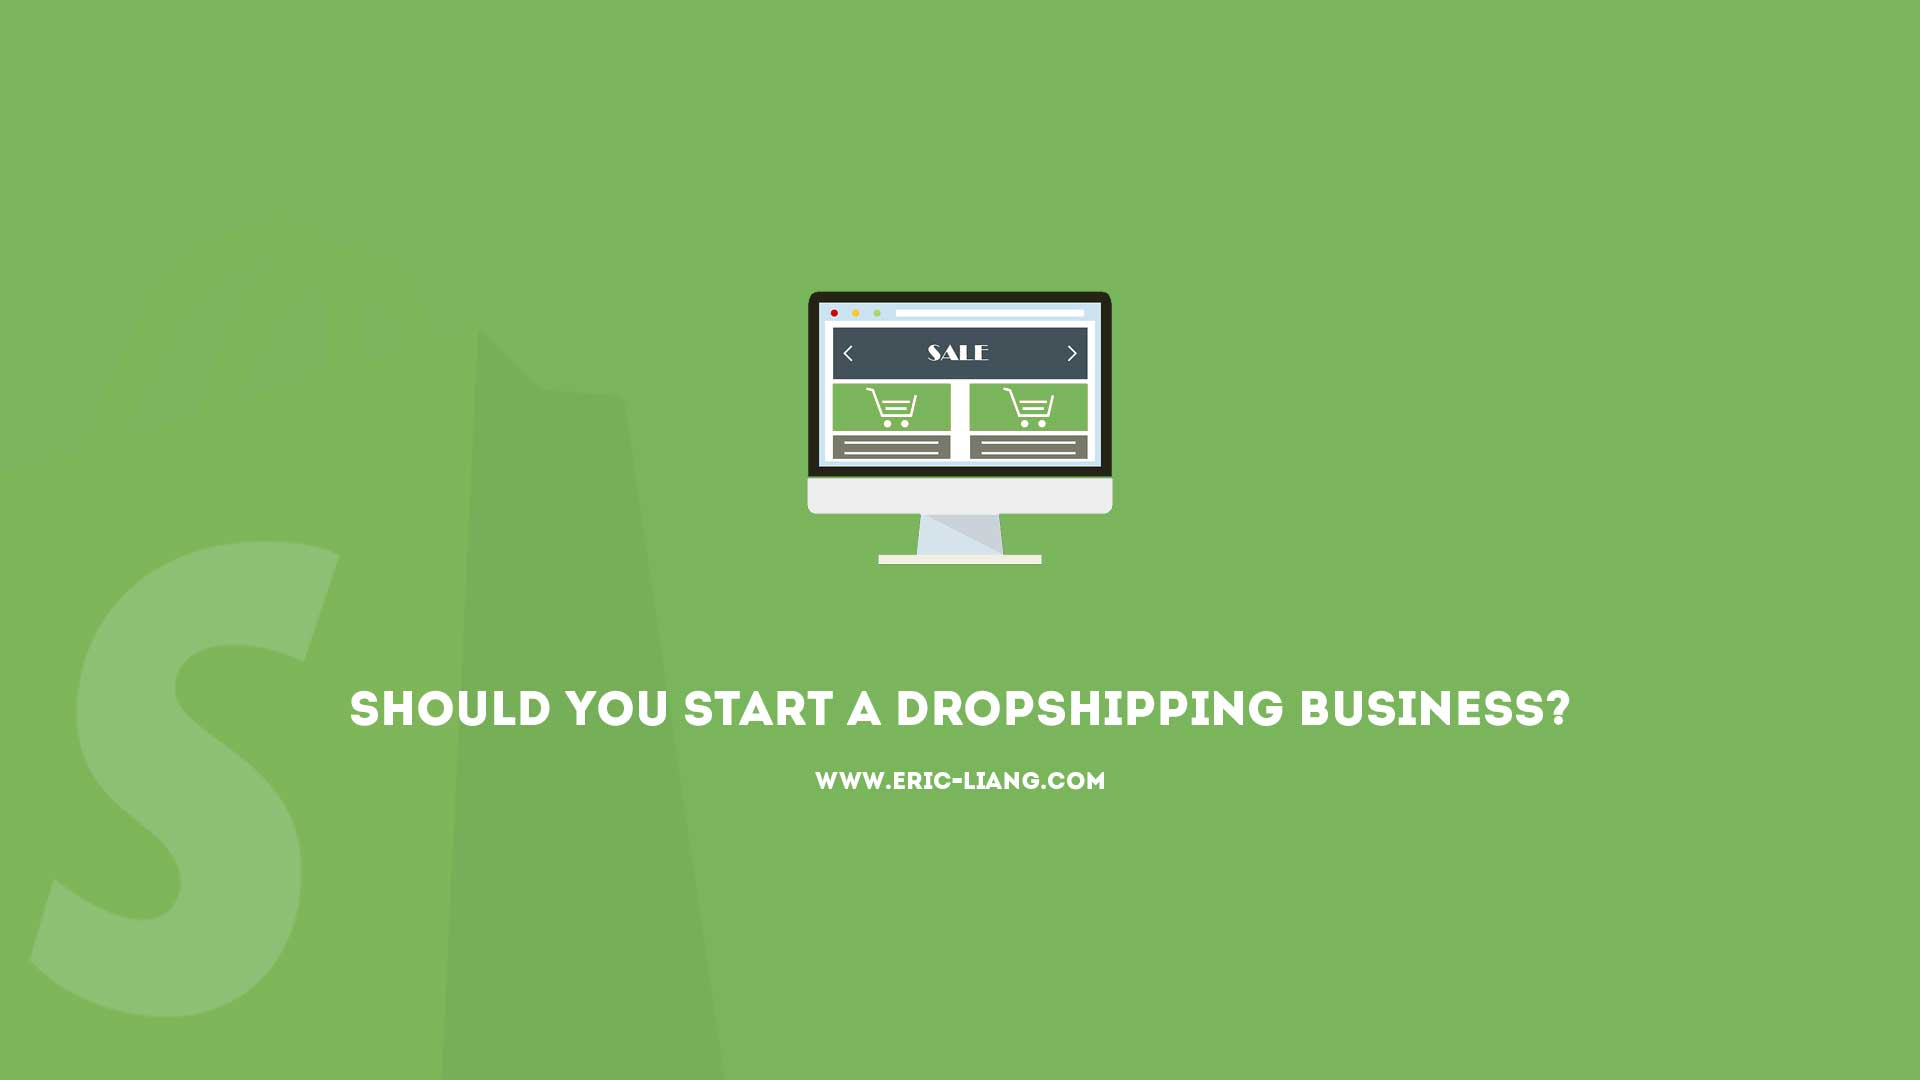 Should You Start a Dropshipping Business?